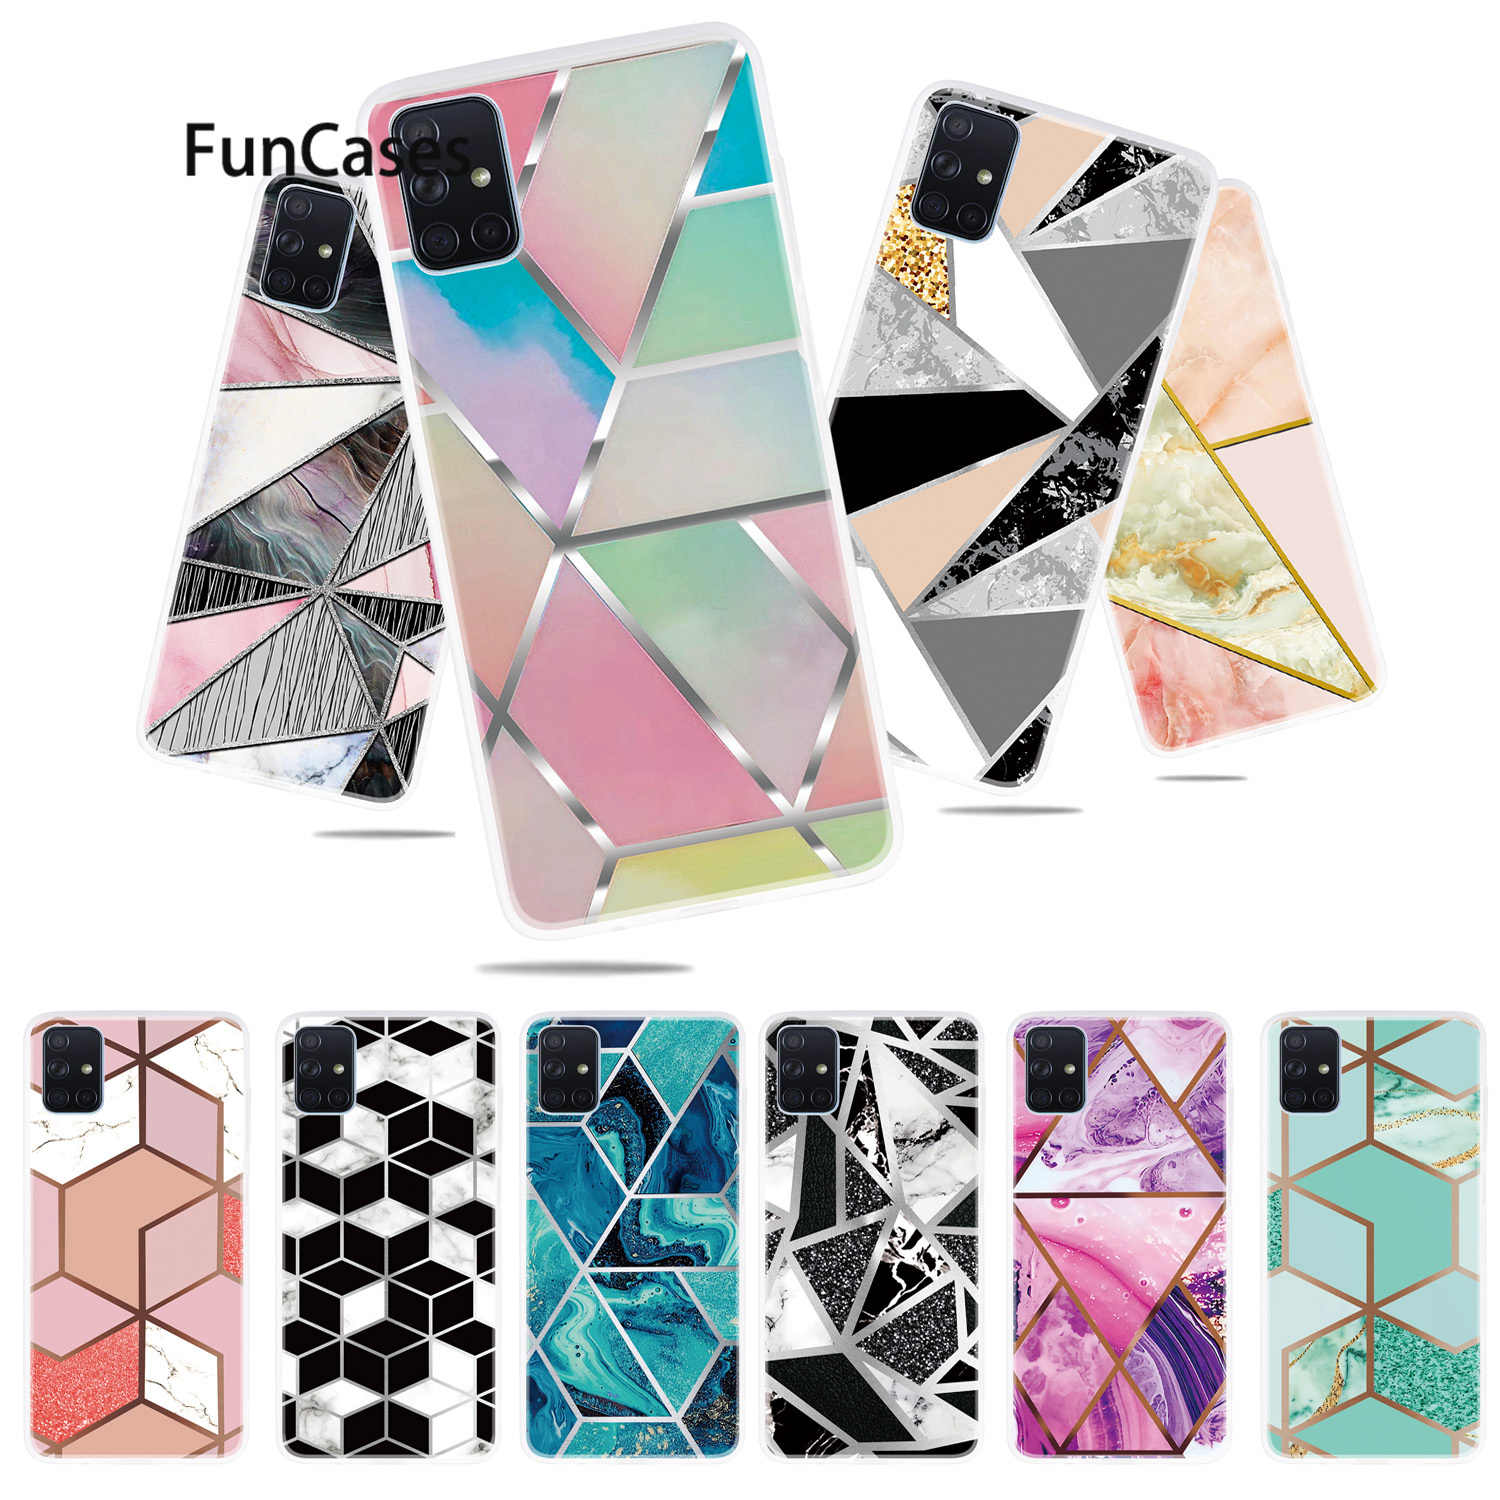 Fashion Phone Etui Cases For cellular Samsung A71 Cellular Floral Coverage sFor Samsung Galaxy funda A71 Soft Silicone Shell